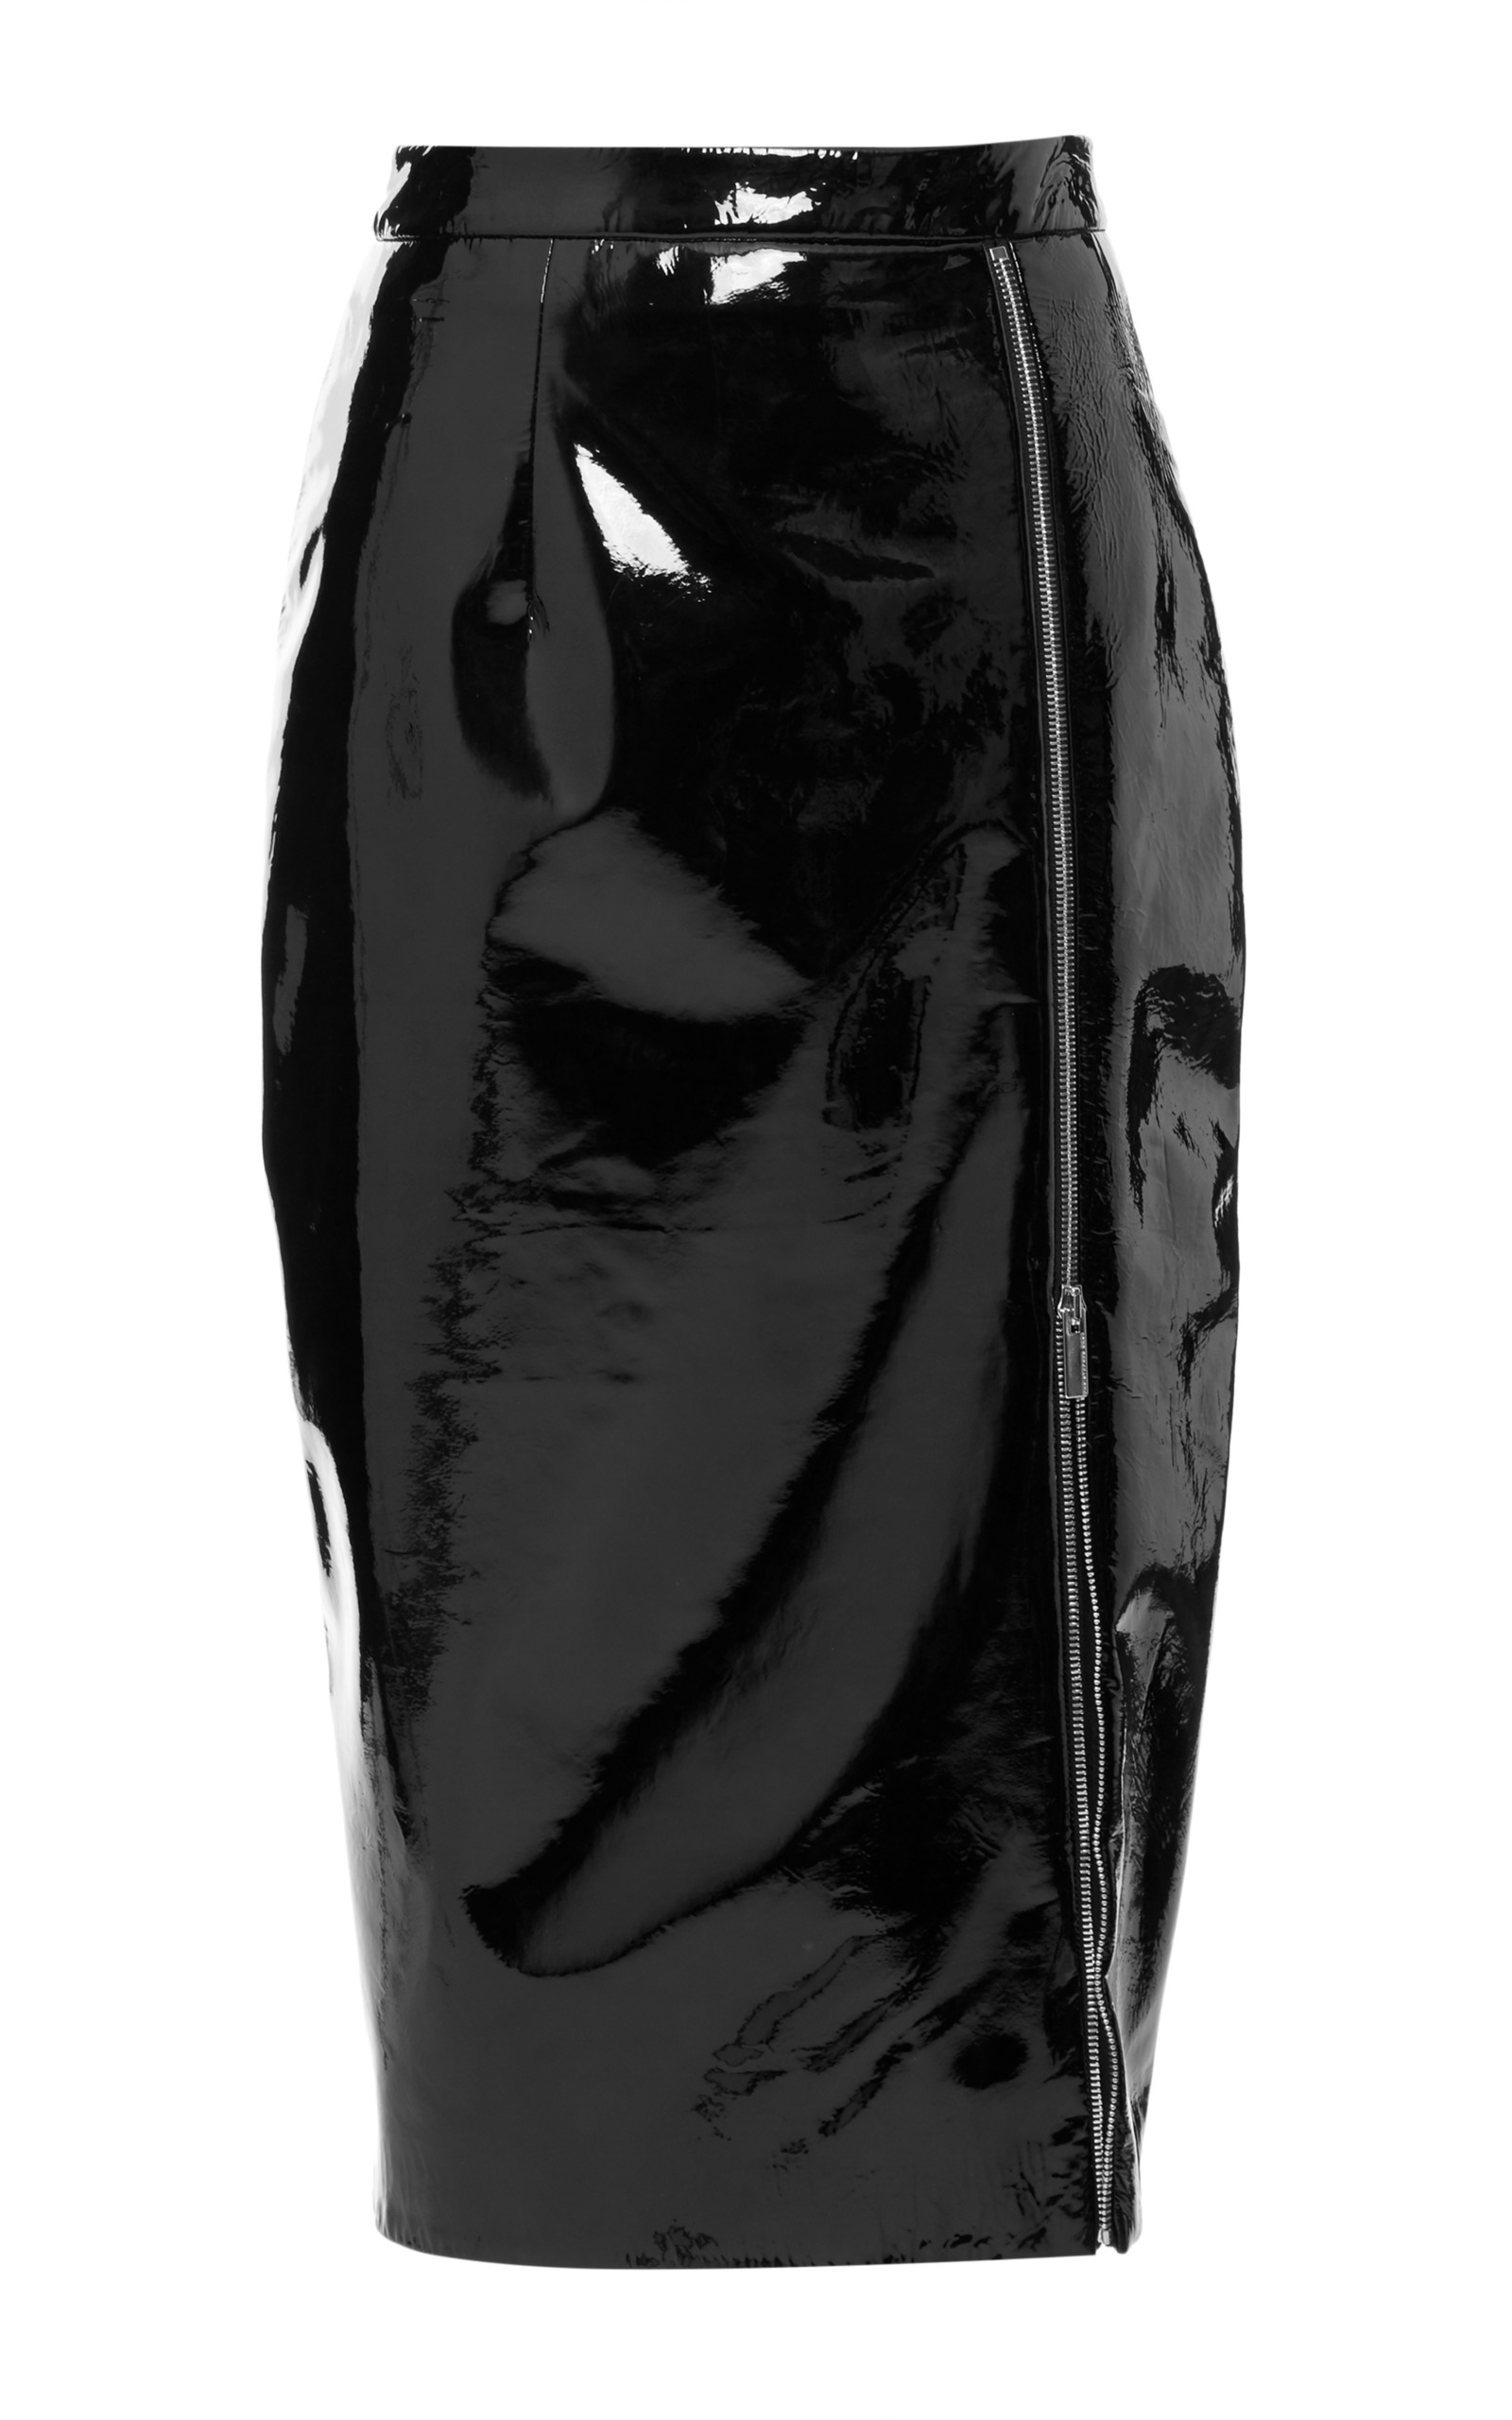 Patent Leather Pencil Skirt With Zip Detail By Moda Operandi